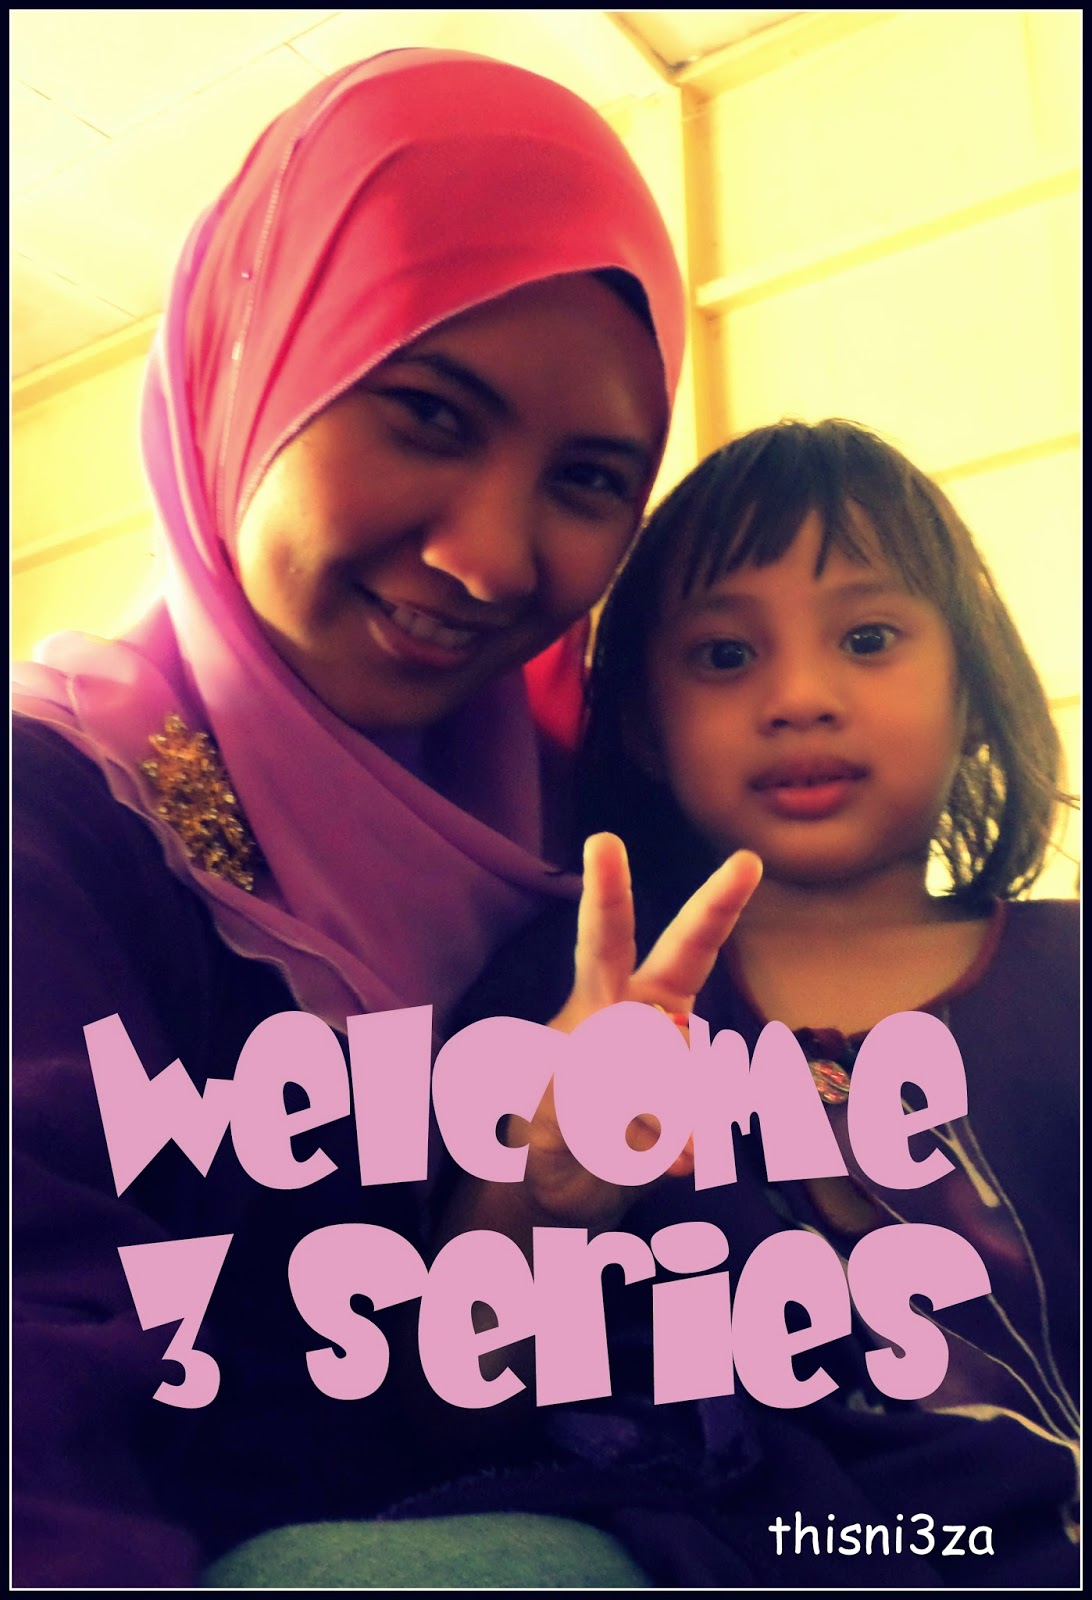 Welcome 3 Series..